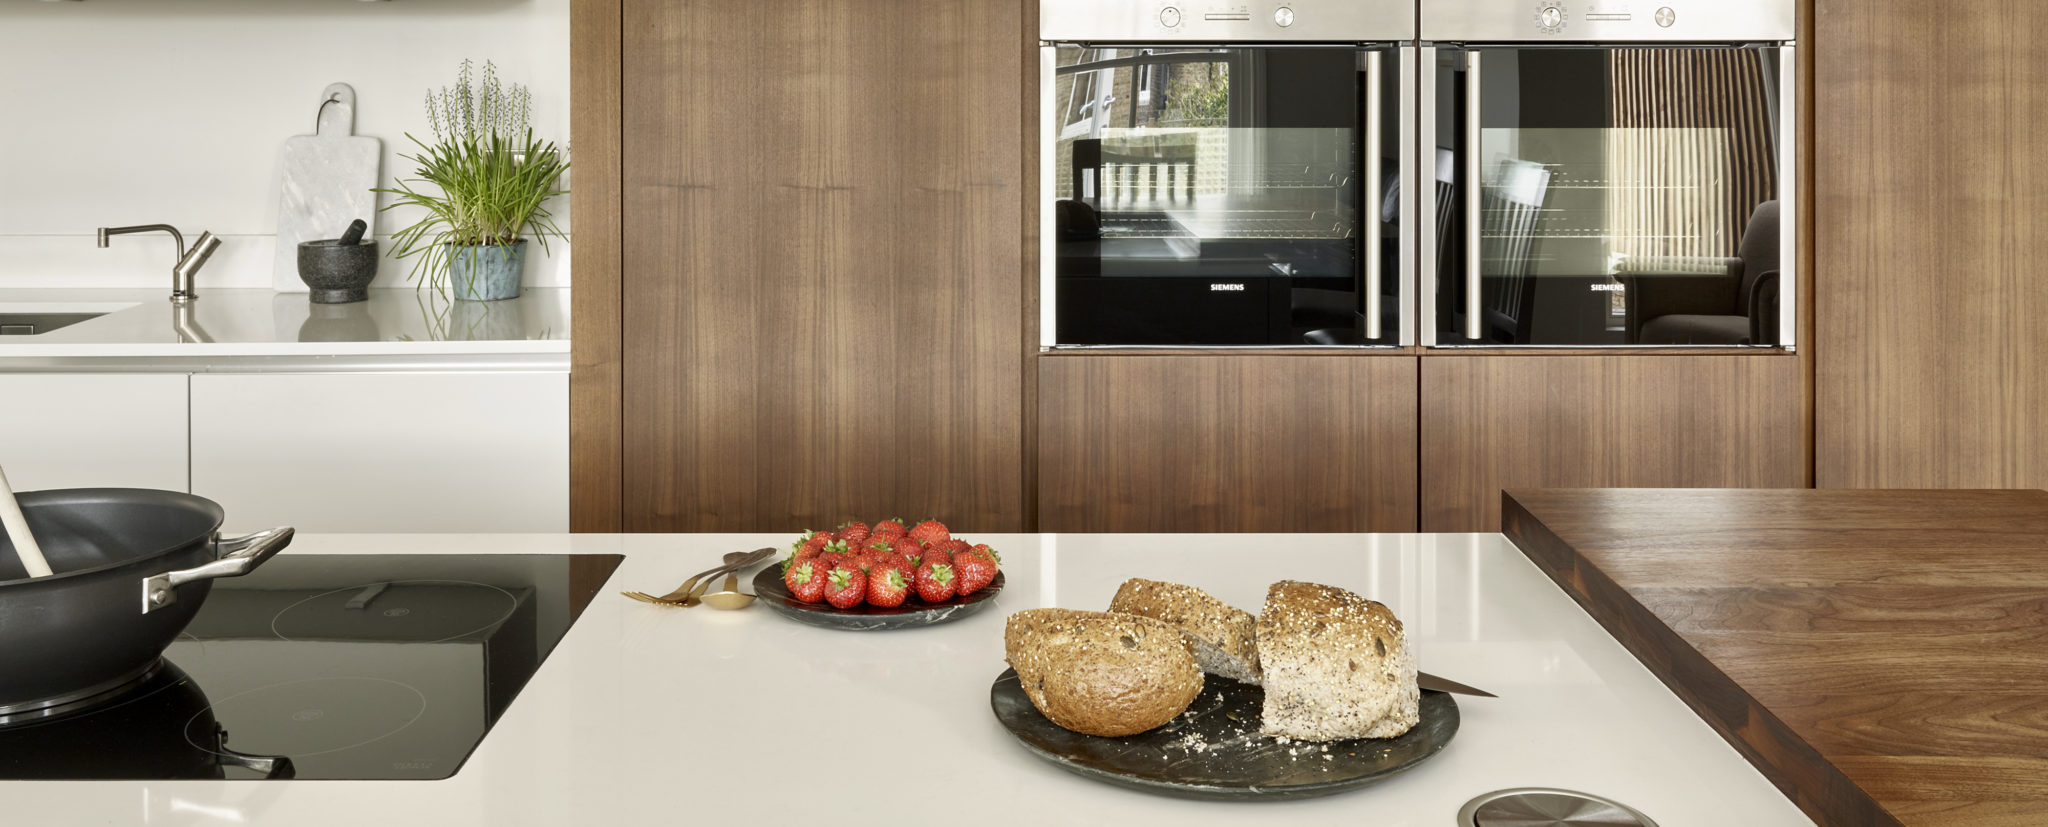 Kitchen island worktop with integrated electric hob. Handleless walnut kitchen cabinets with wall-mounted oven.